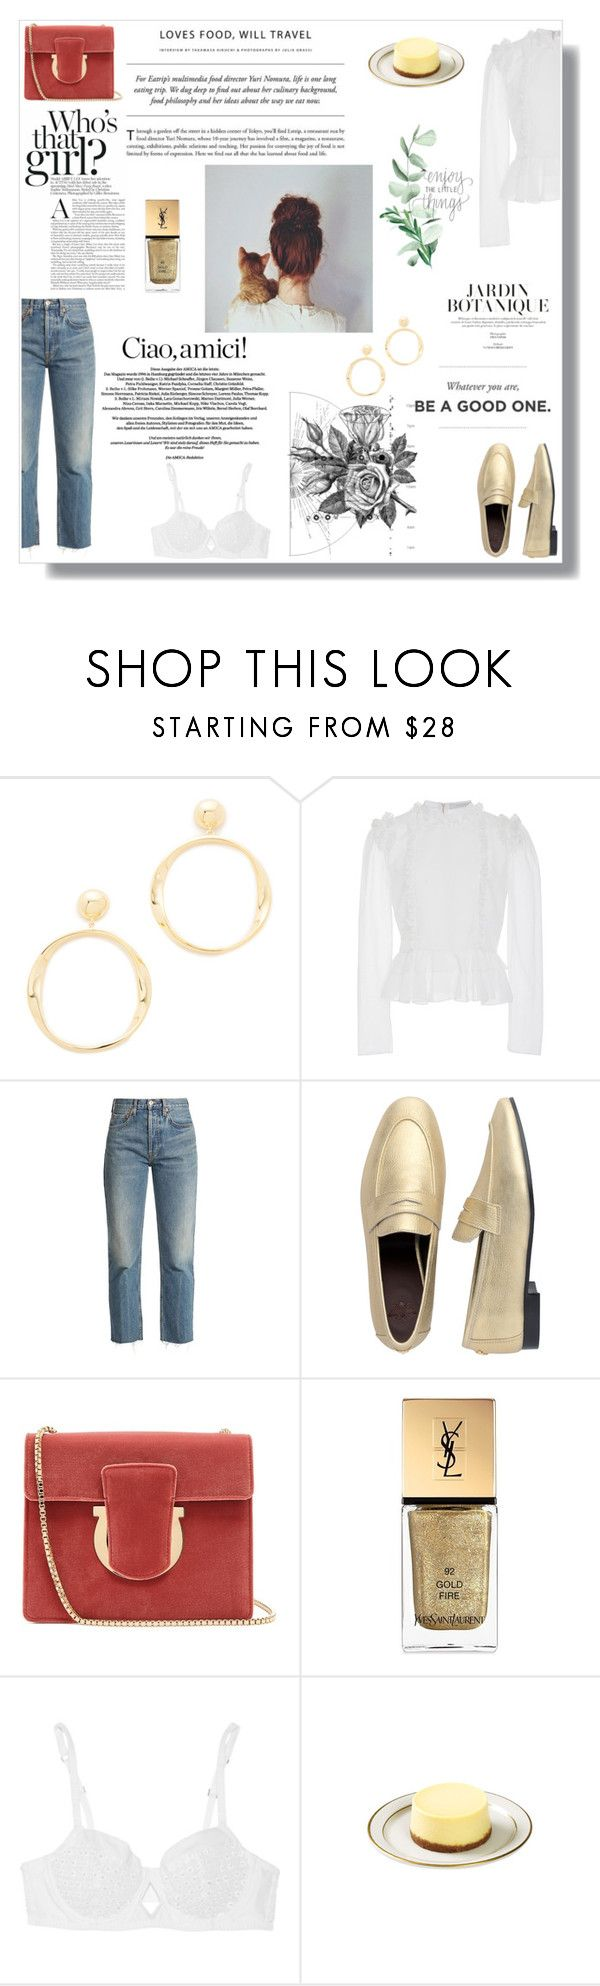 """""""""""No medicine cures what happiness cannot."""""""" by nina-lala ❤ liked on Polyvore featuring Kate Spade, Laura Garcia, RE/DONE, Bougeotte, Salvatore Ferragamo, Yves Saint Laurent, Madame Aime and Boudicca"""